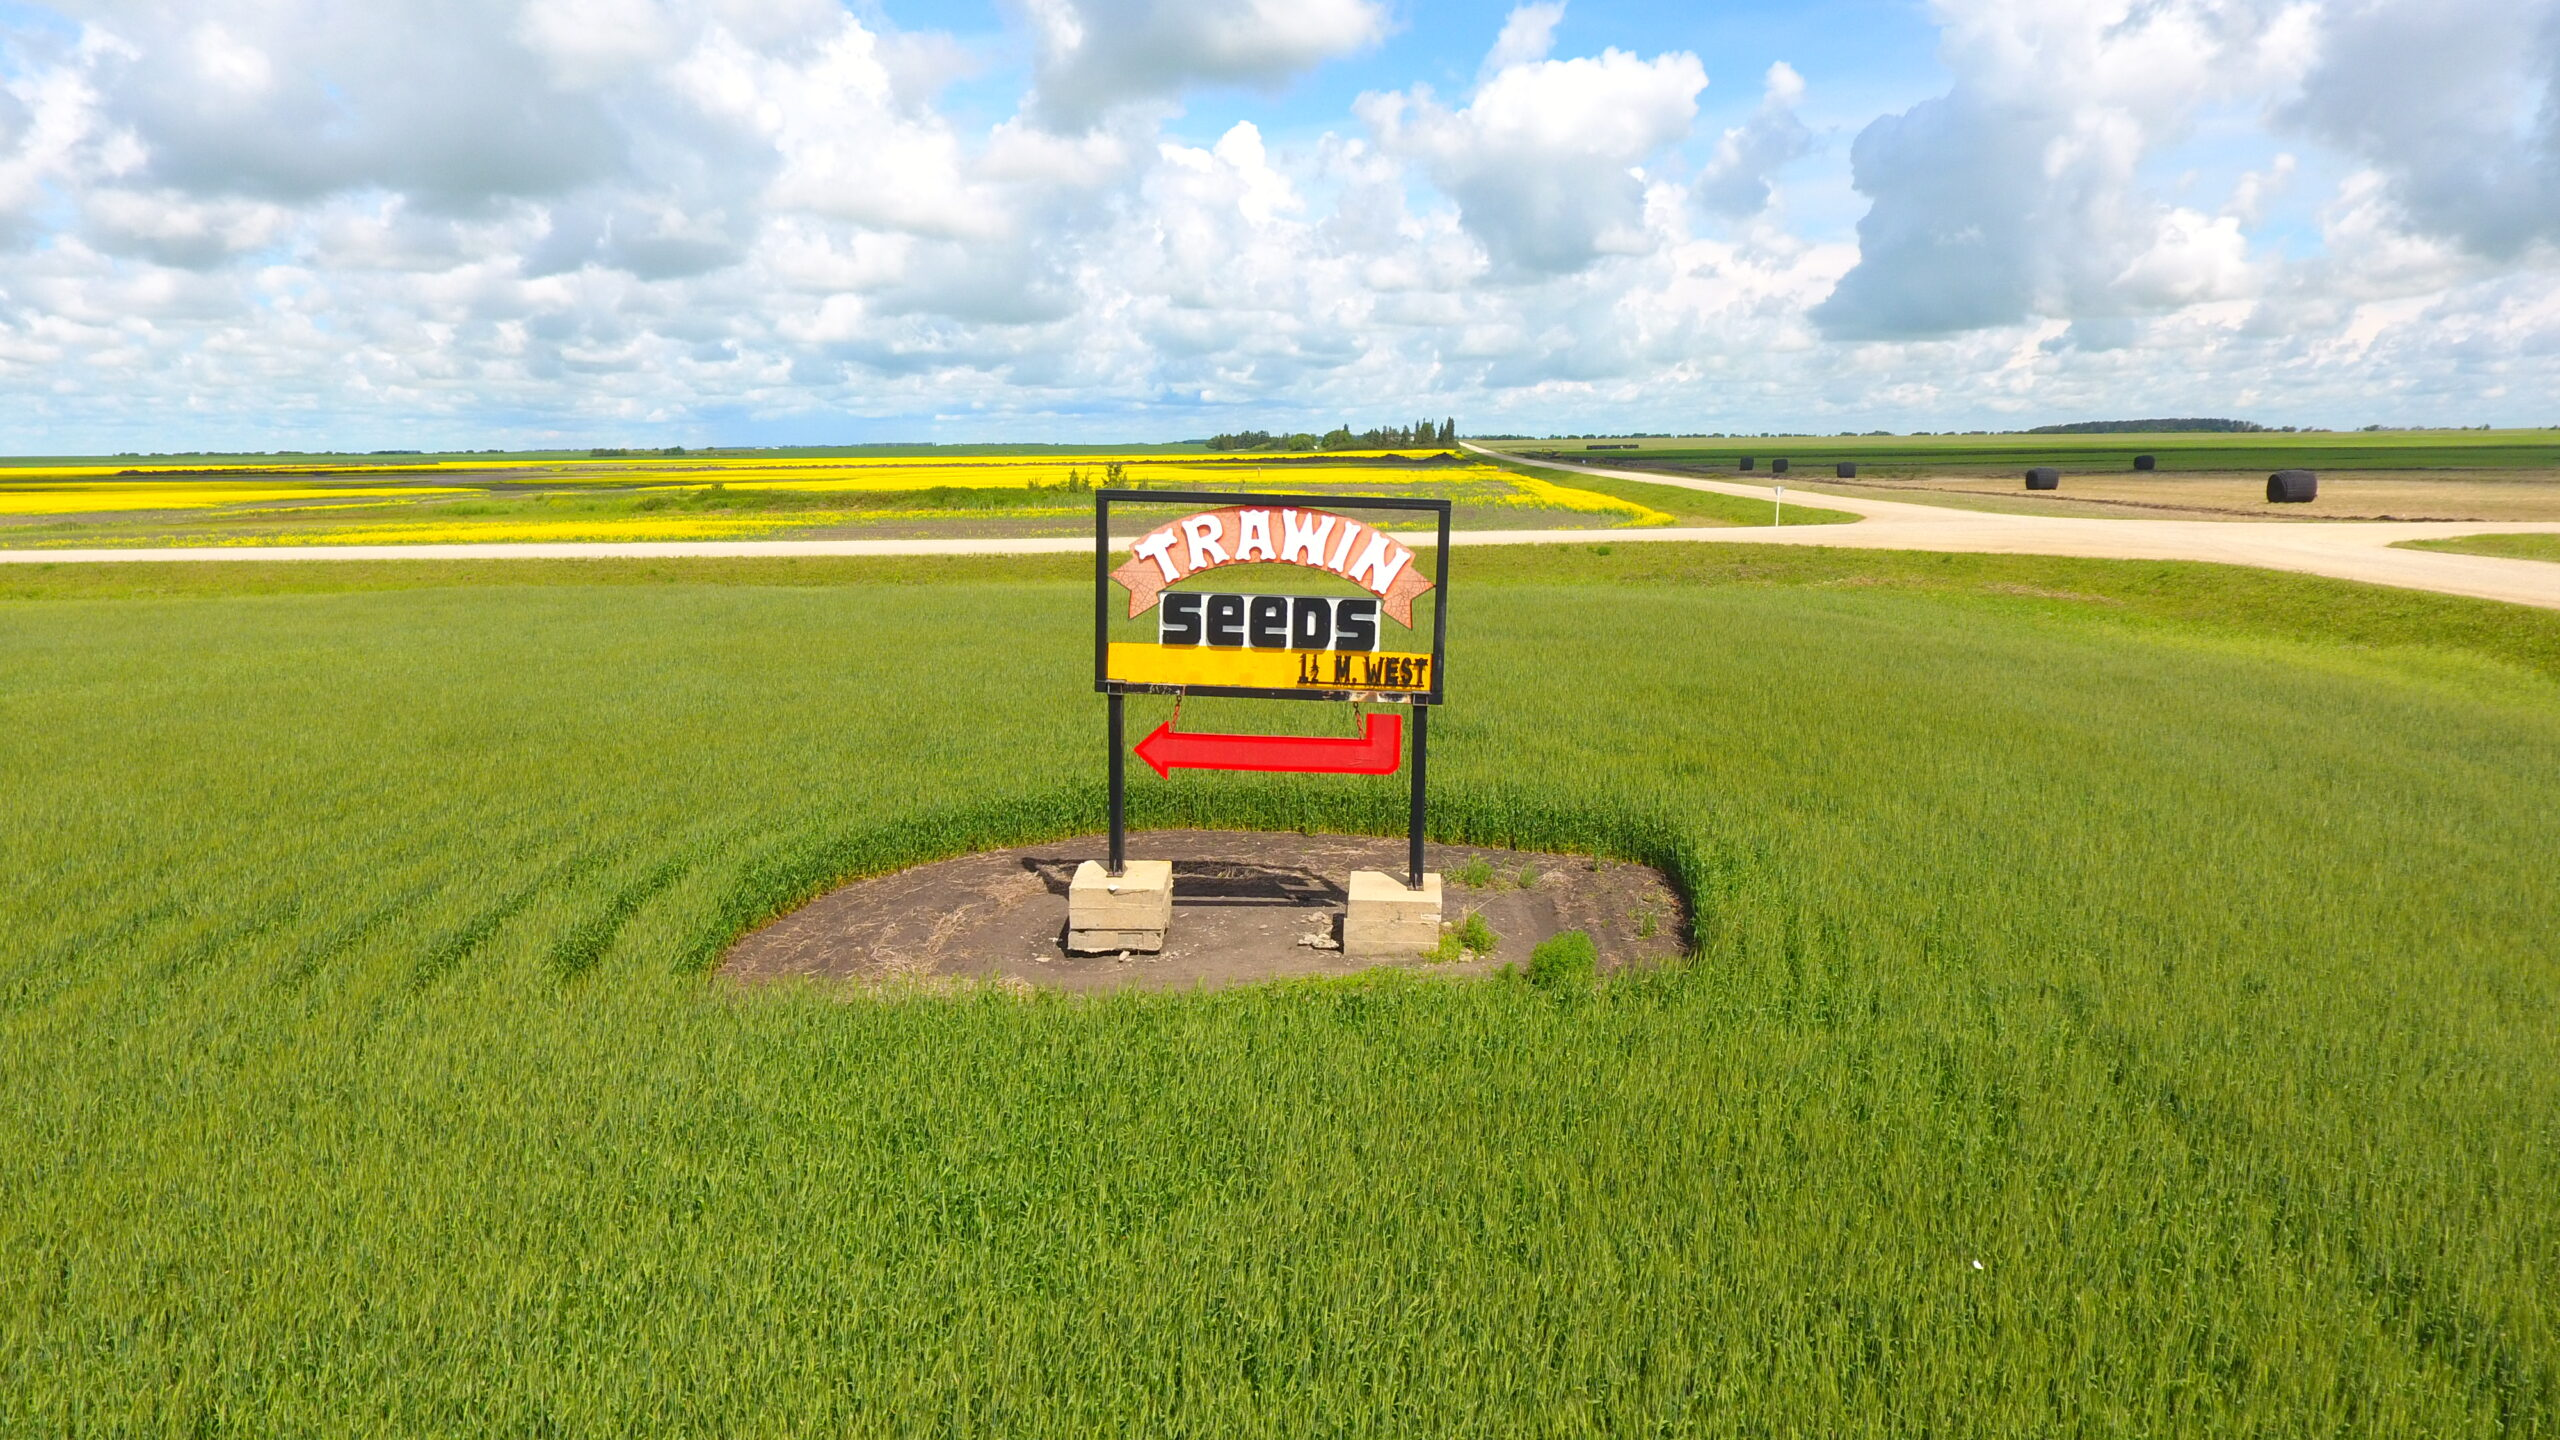 Naisberry Grid Road Trawin Seeds Sign